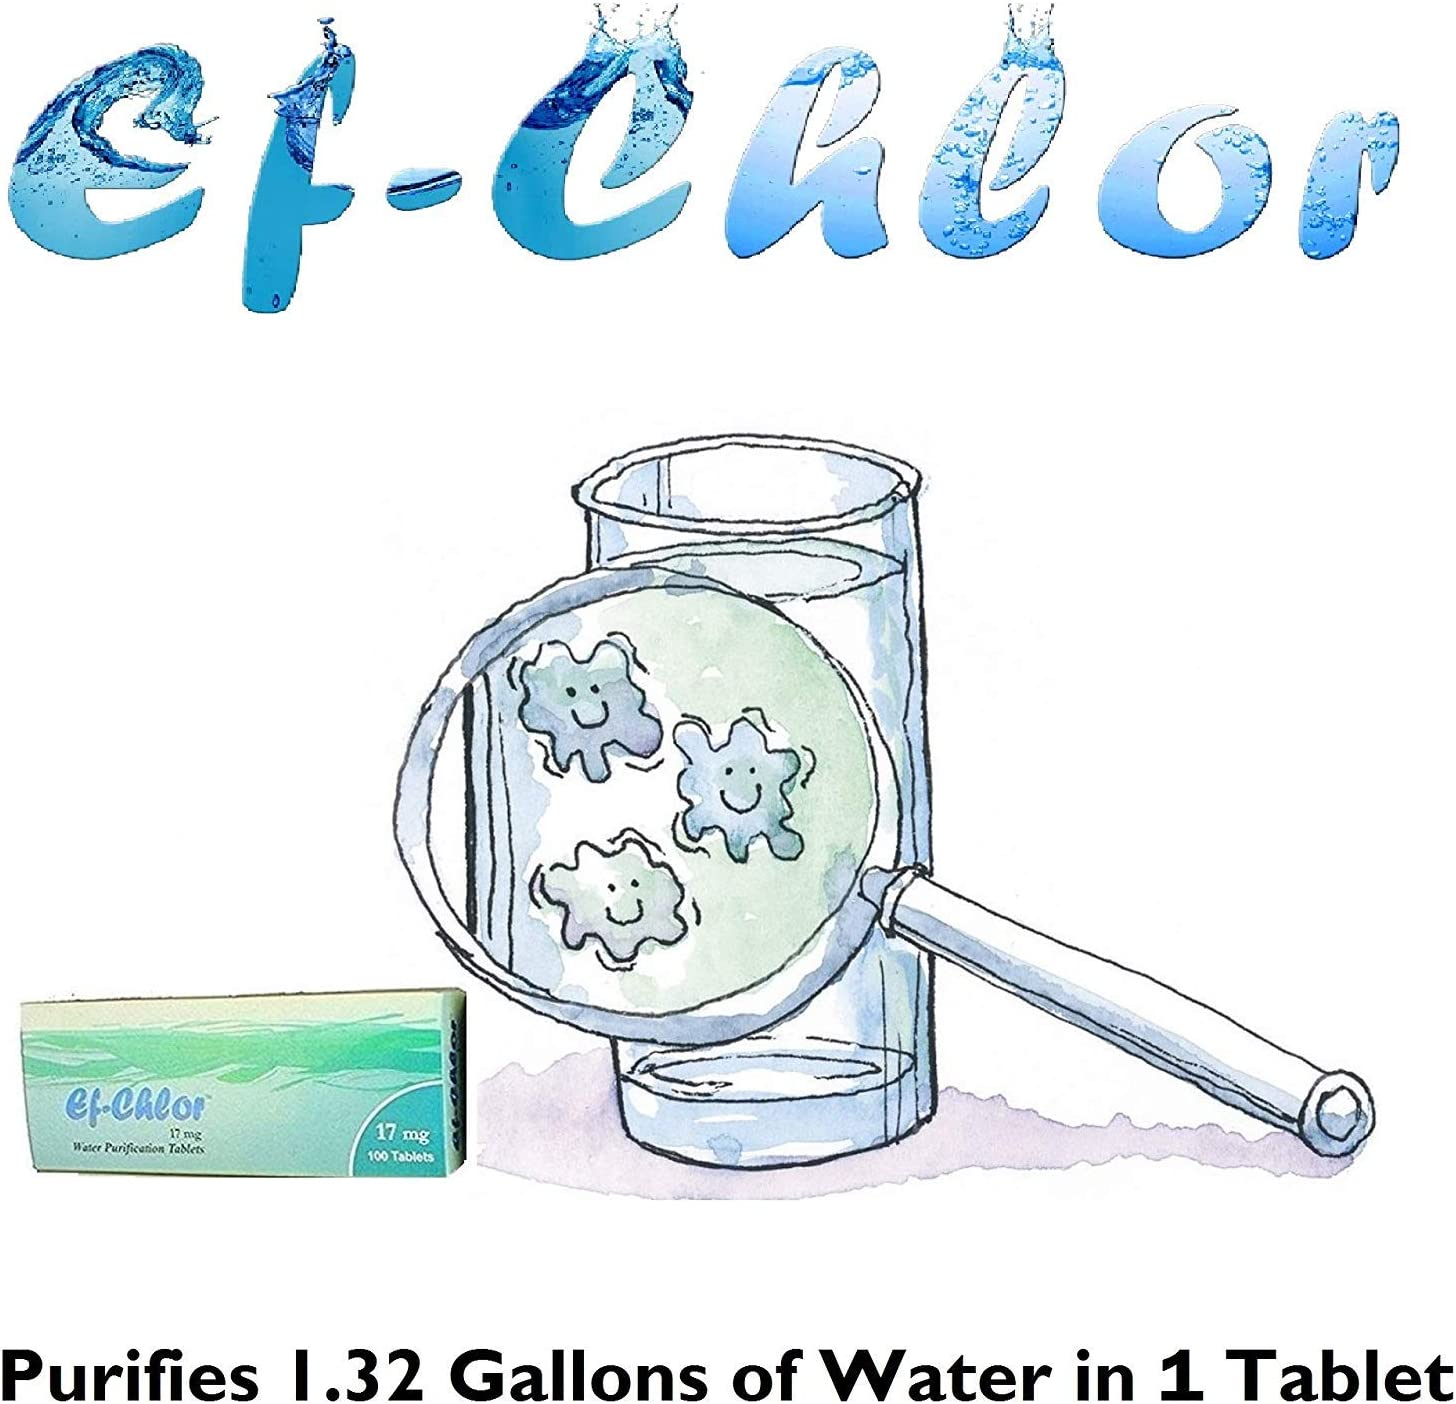 Ef-Chlor | Water Purification Treatment (17 mg - 100 Tablets) - Portable Drinking Water Treatment Ideal for Emergencies, Survival, Travel, and Camping, Purifies 1.32 Gallons in 1 Tablet